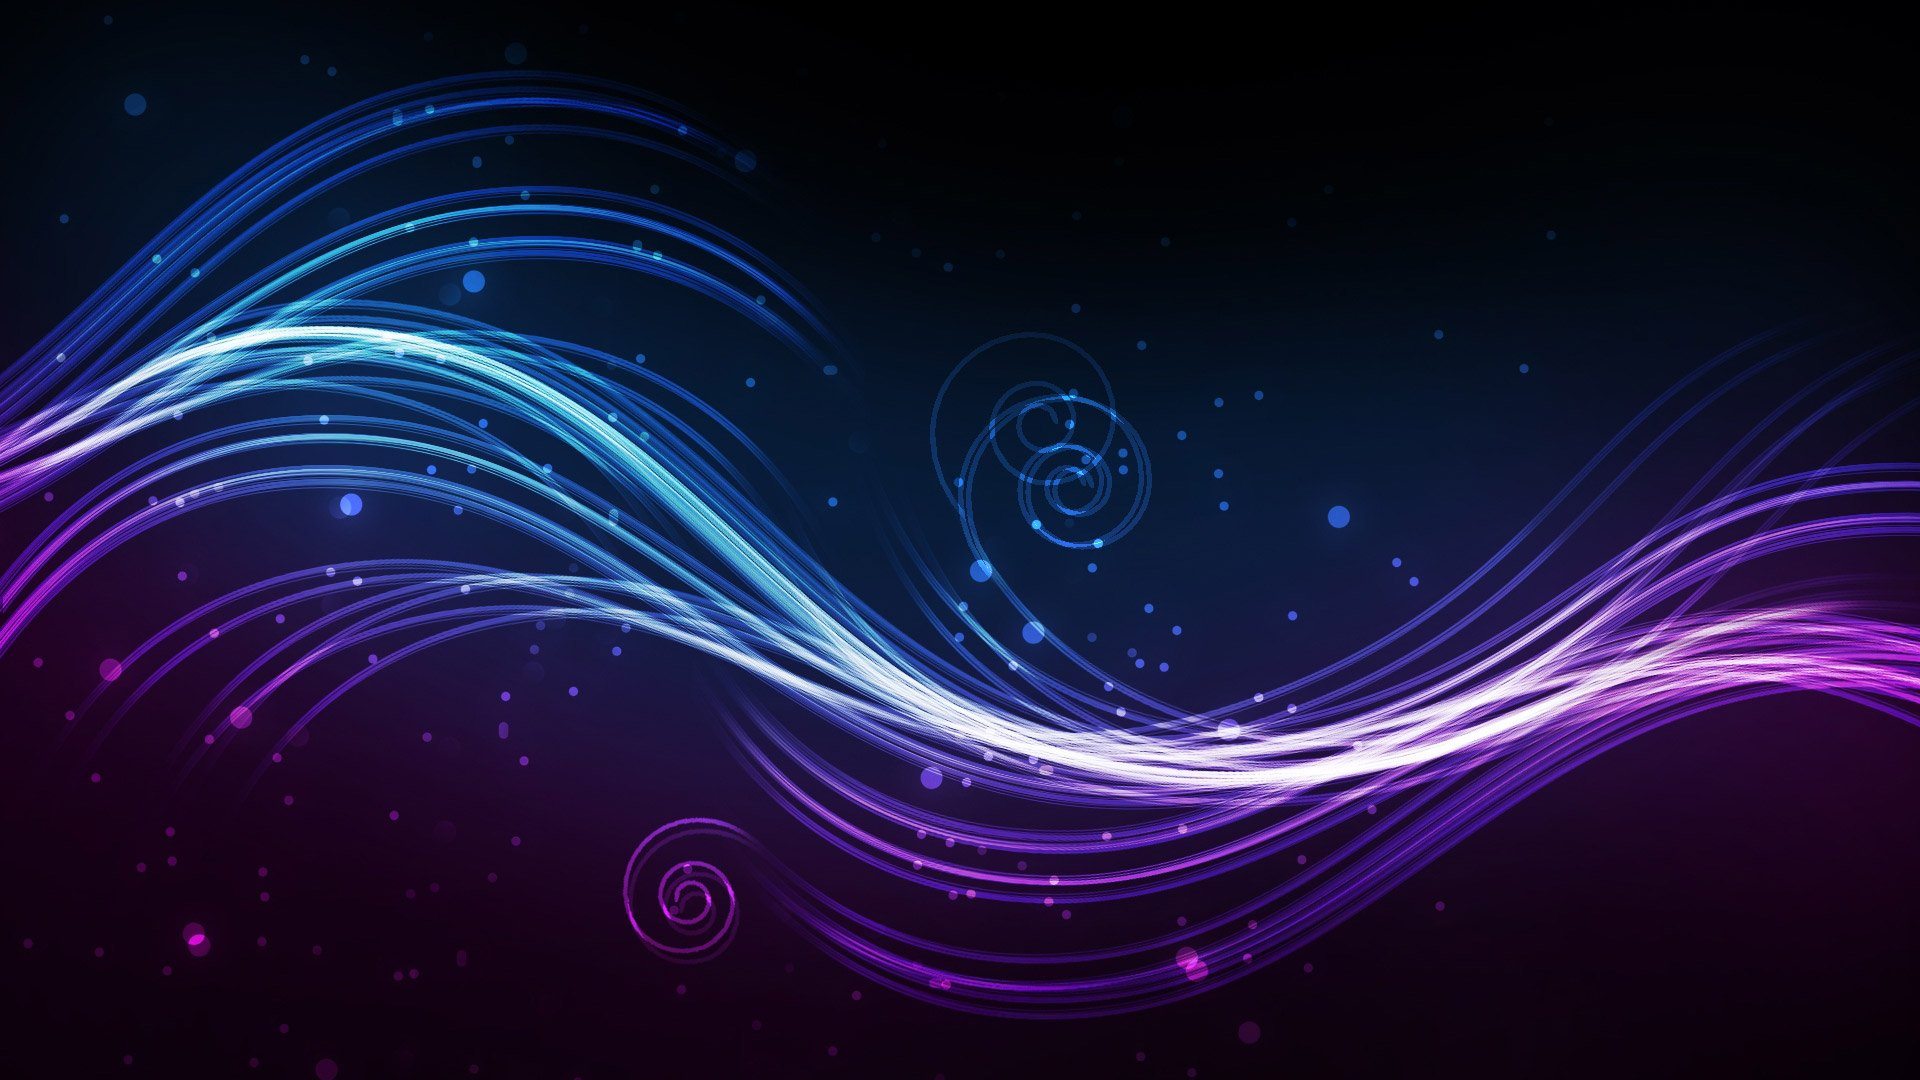 to set this hd wallpaper background abstract as wallpaper background 1920x1080